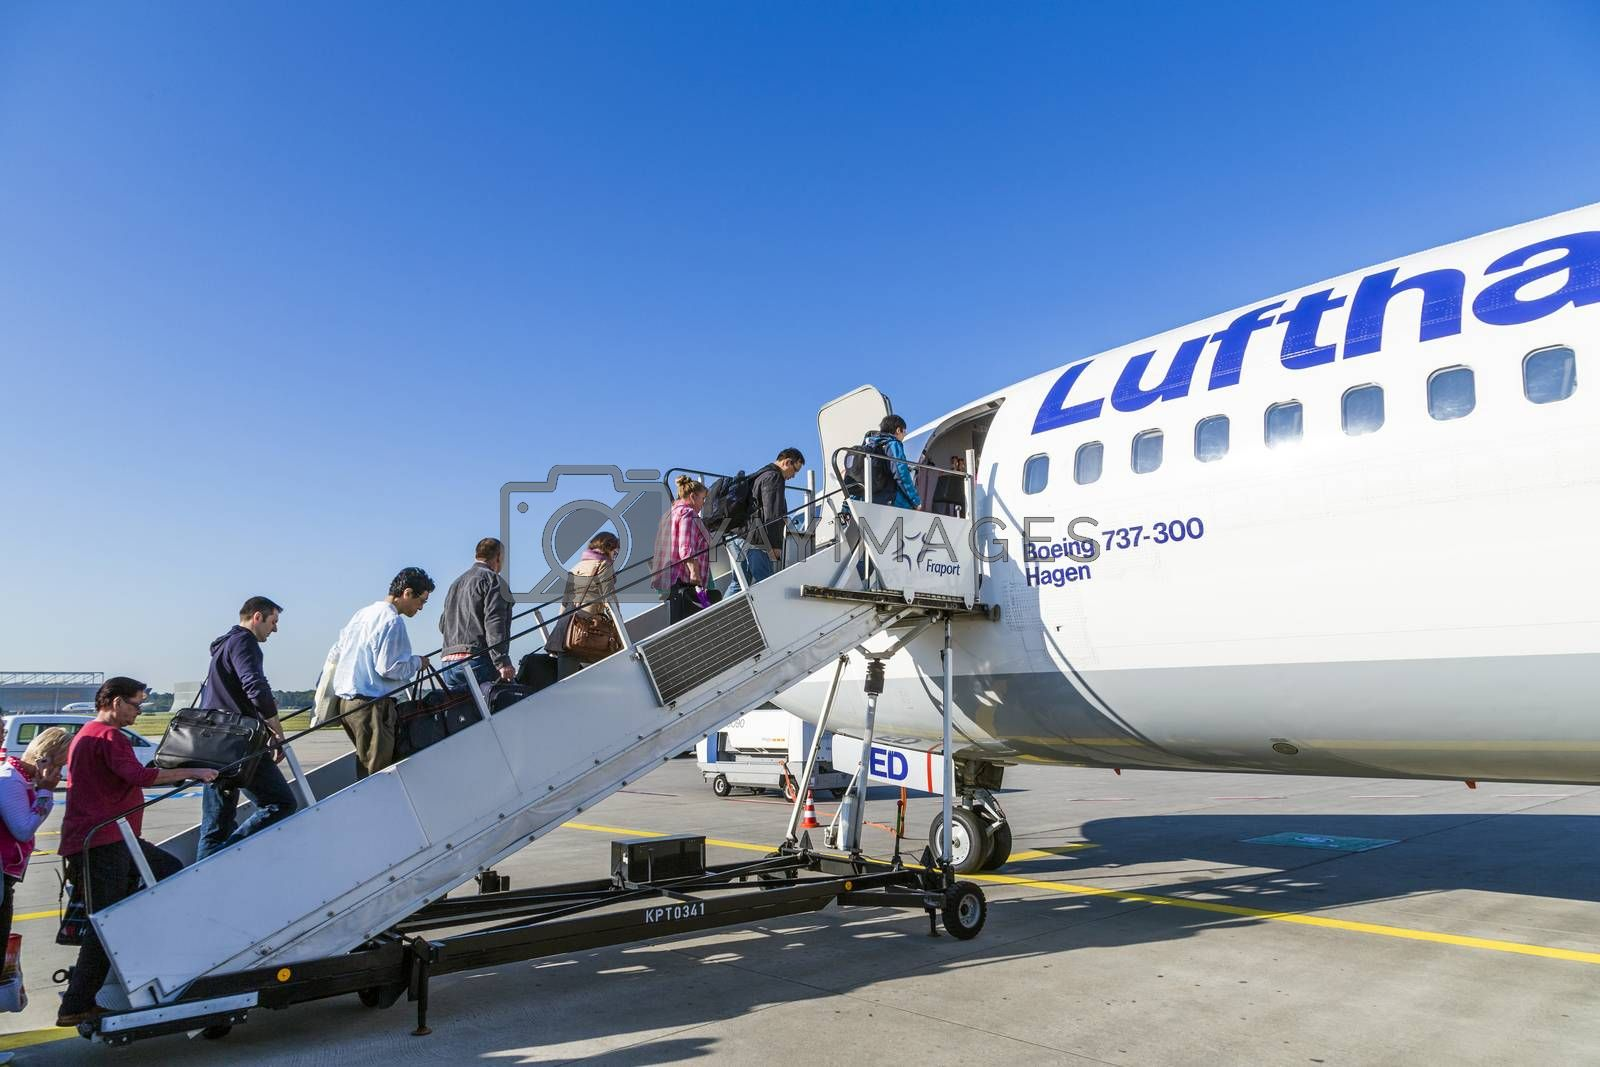 FRANKFURT, GERMANY - MAY 4: people board the Lufthansa aircraft on May 4, 2014 in Frankfurt, Germany. Frankfurt is  the busiest airport in Germany and one of the mosy busy in Europe.